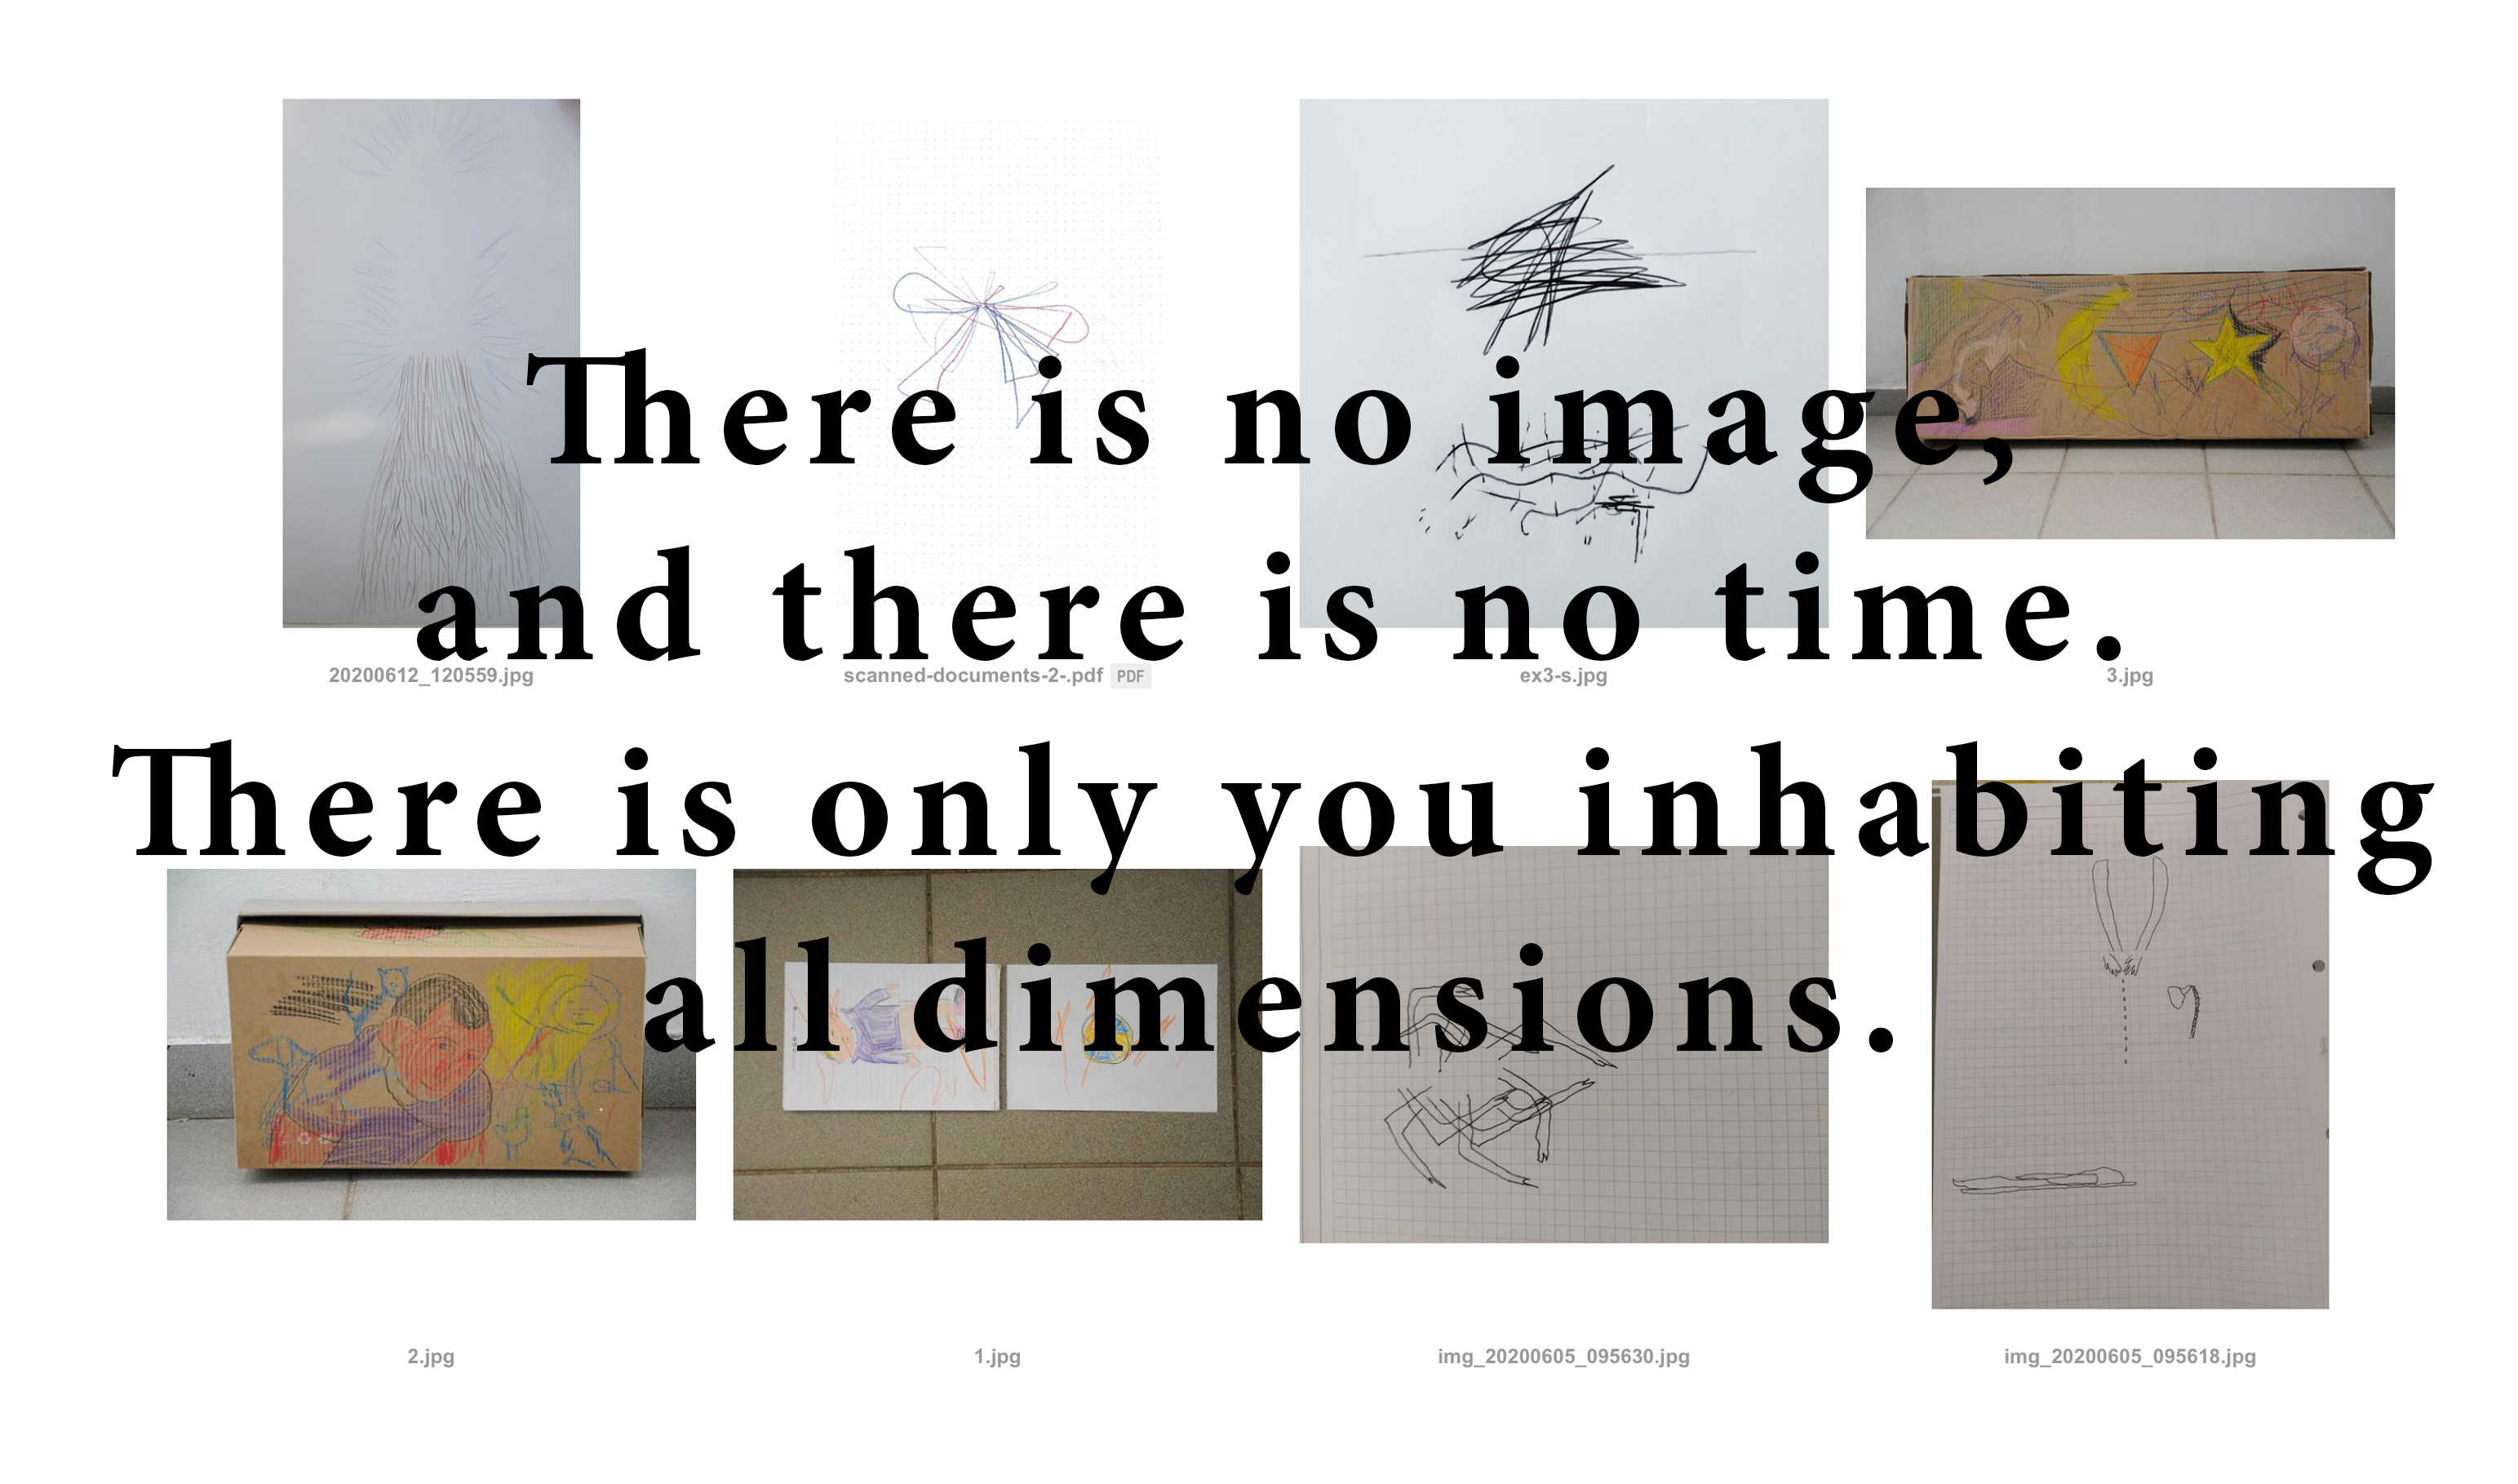 COOP SUMMIT 2020: There is no image, and there is no time. There is only you inhabiting all dimensions